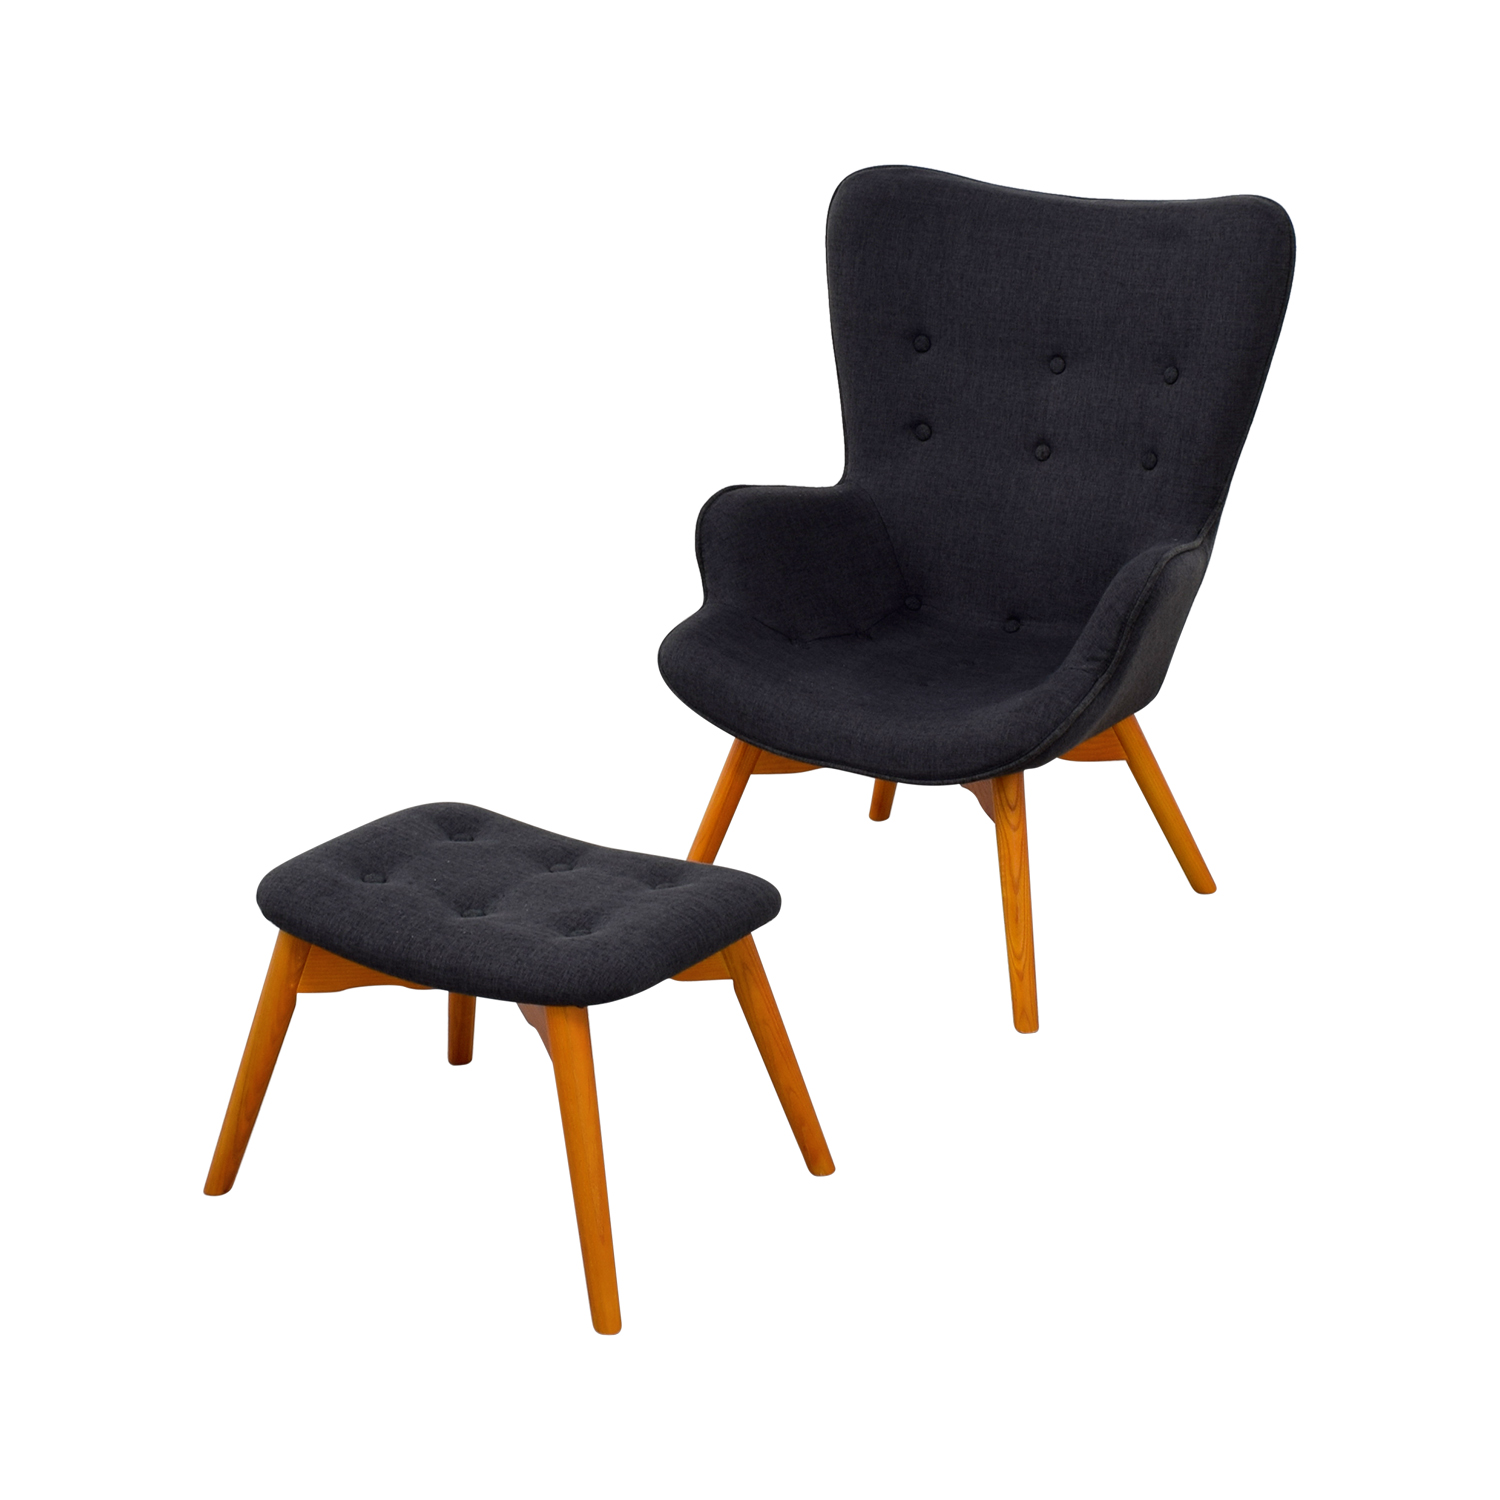 Admirable 58 Off Joss Main Joss And Main Canyon Vista Lounge Chair And Ottoman Chairs Cjindustries Chair Design For Home Cjindustriesco